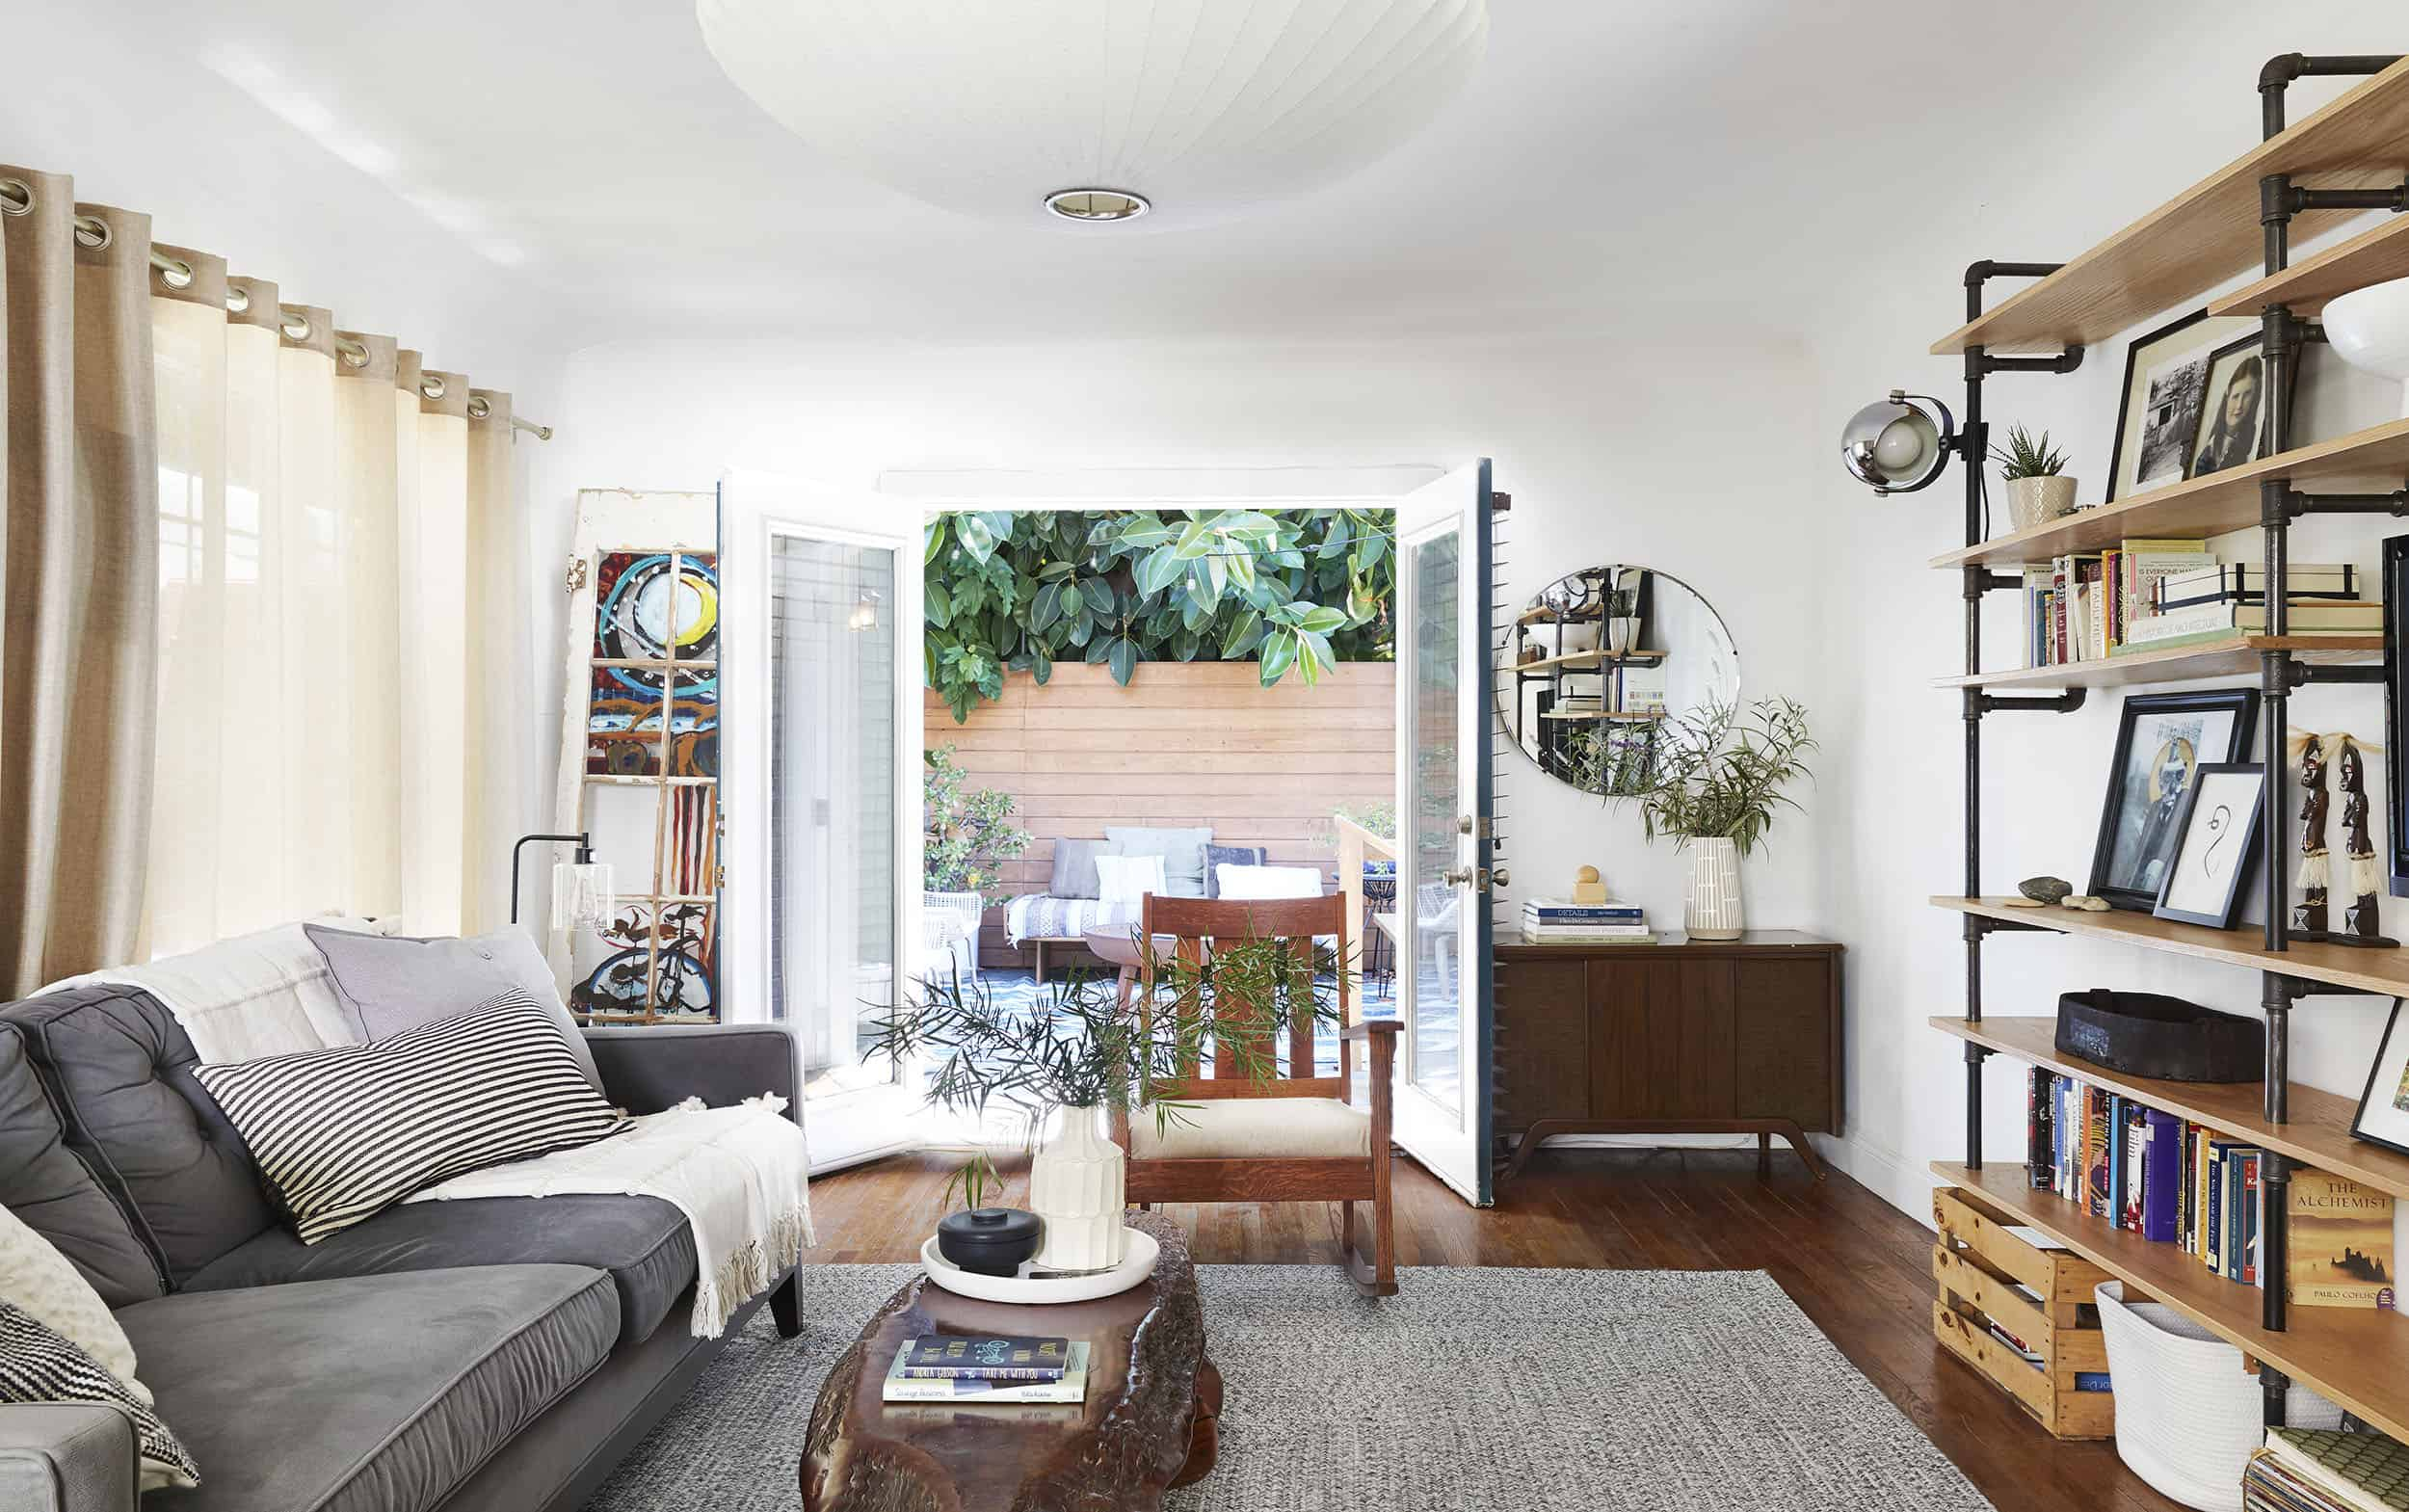 Tips To Save On An Interior Designer 05